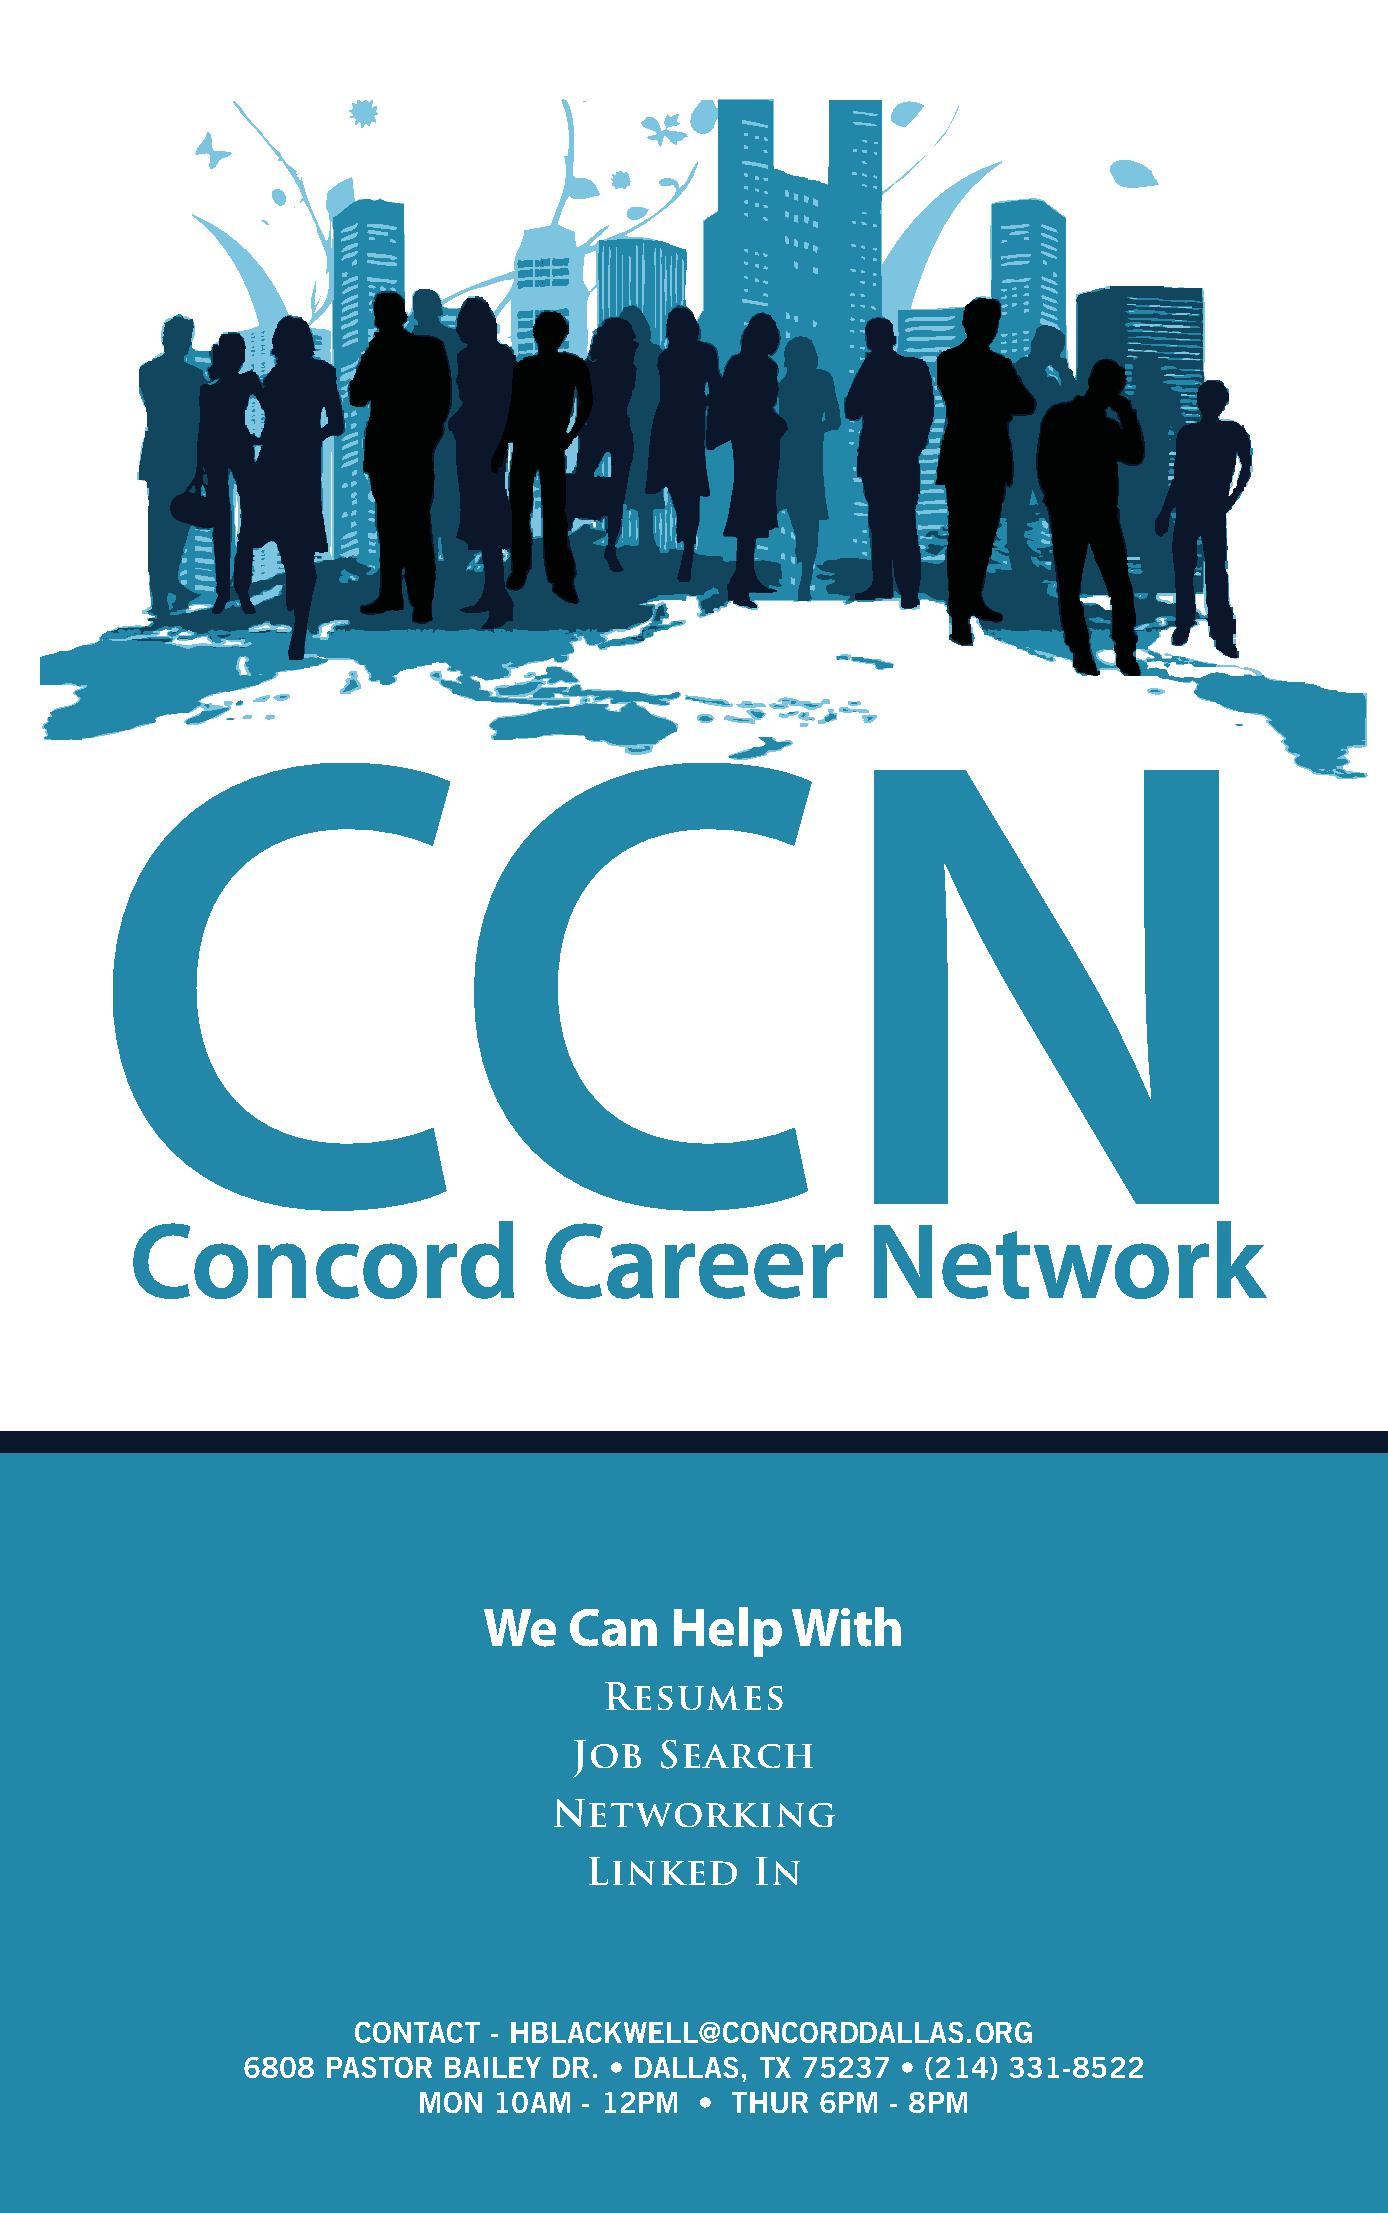 Concord Career Network